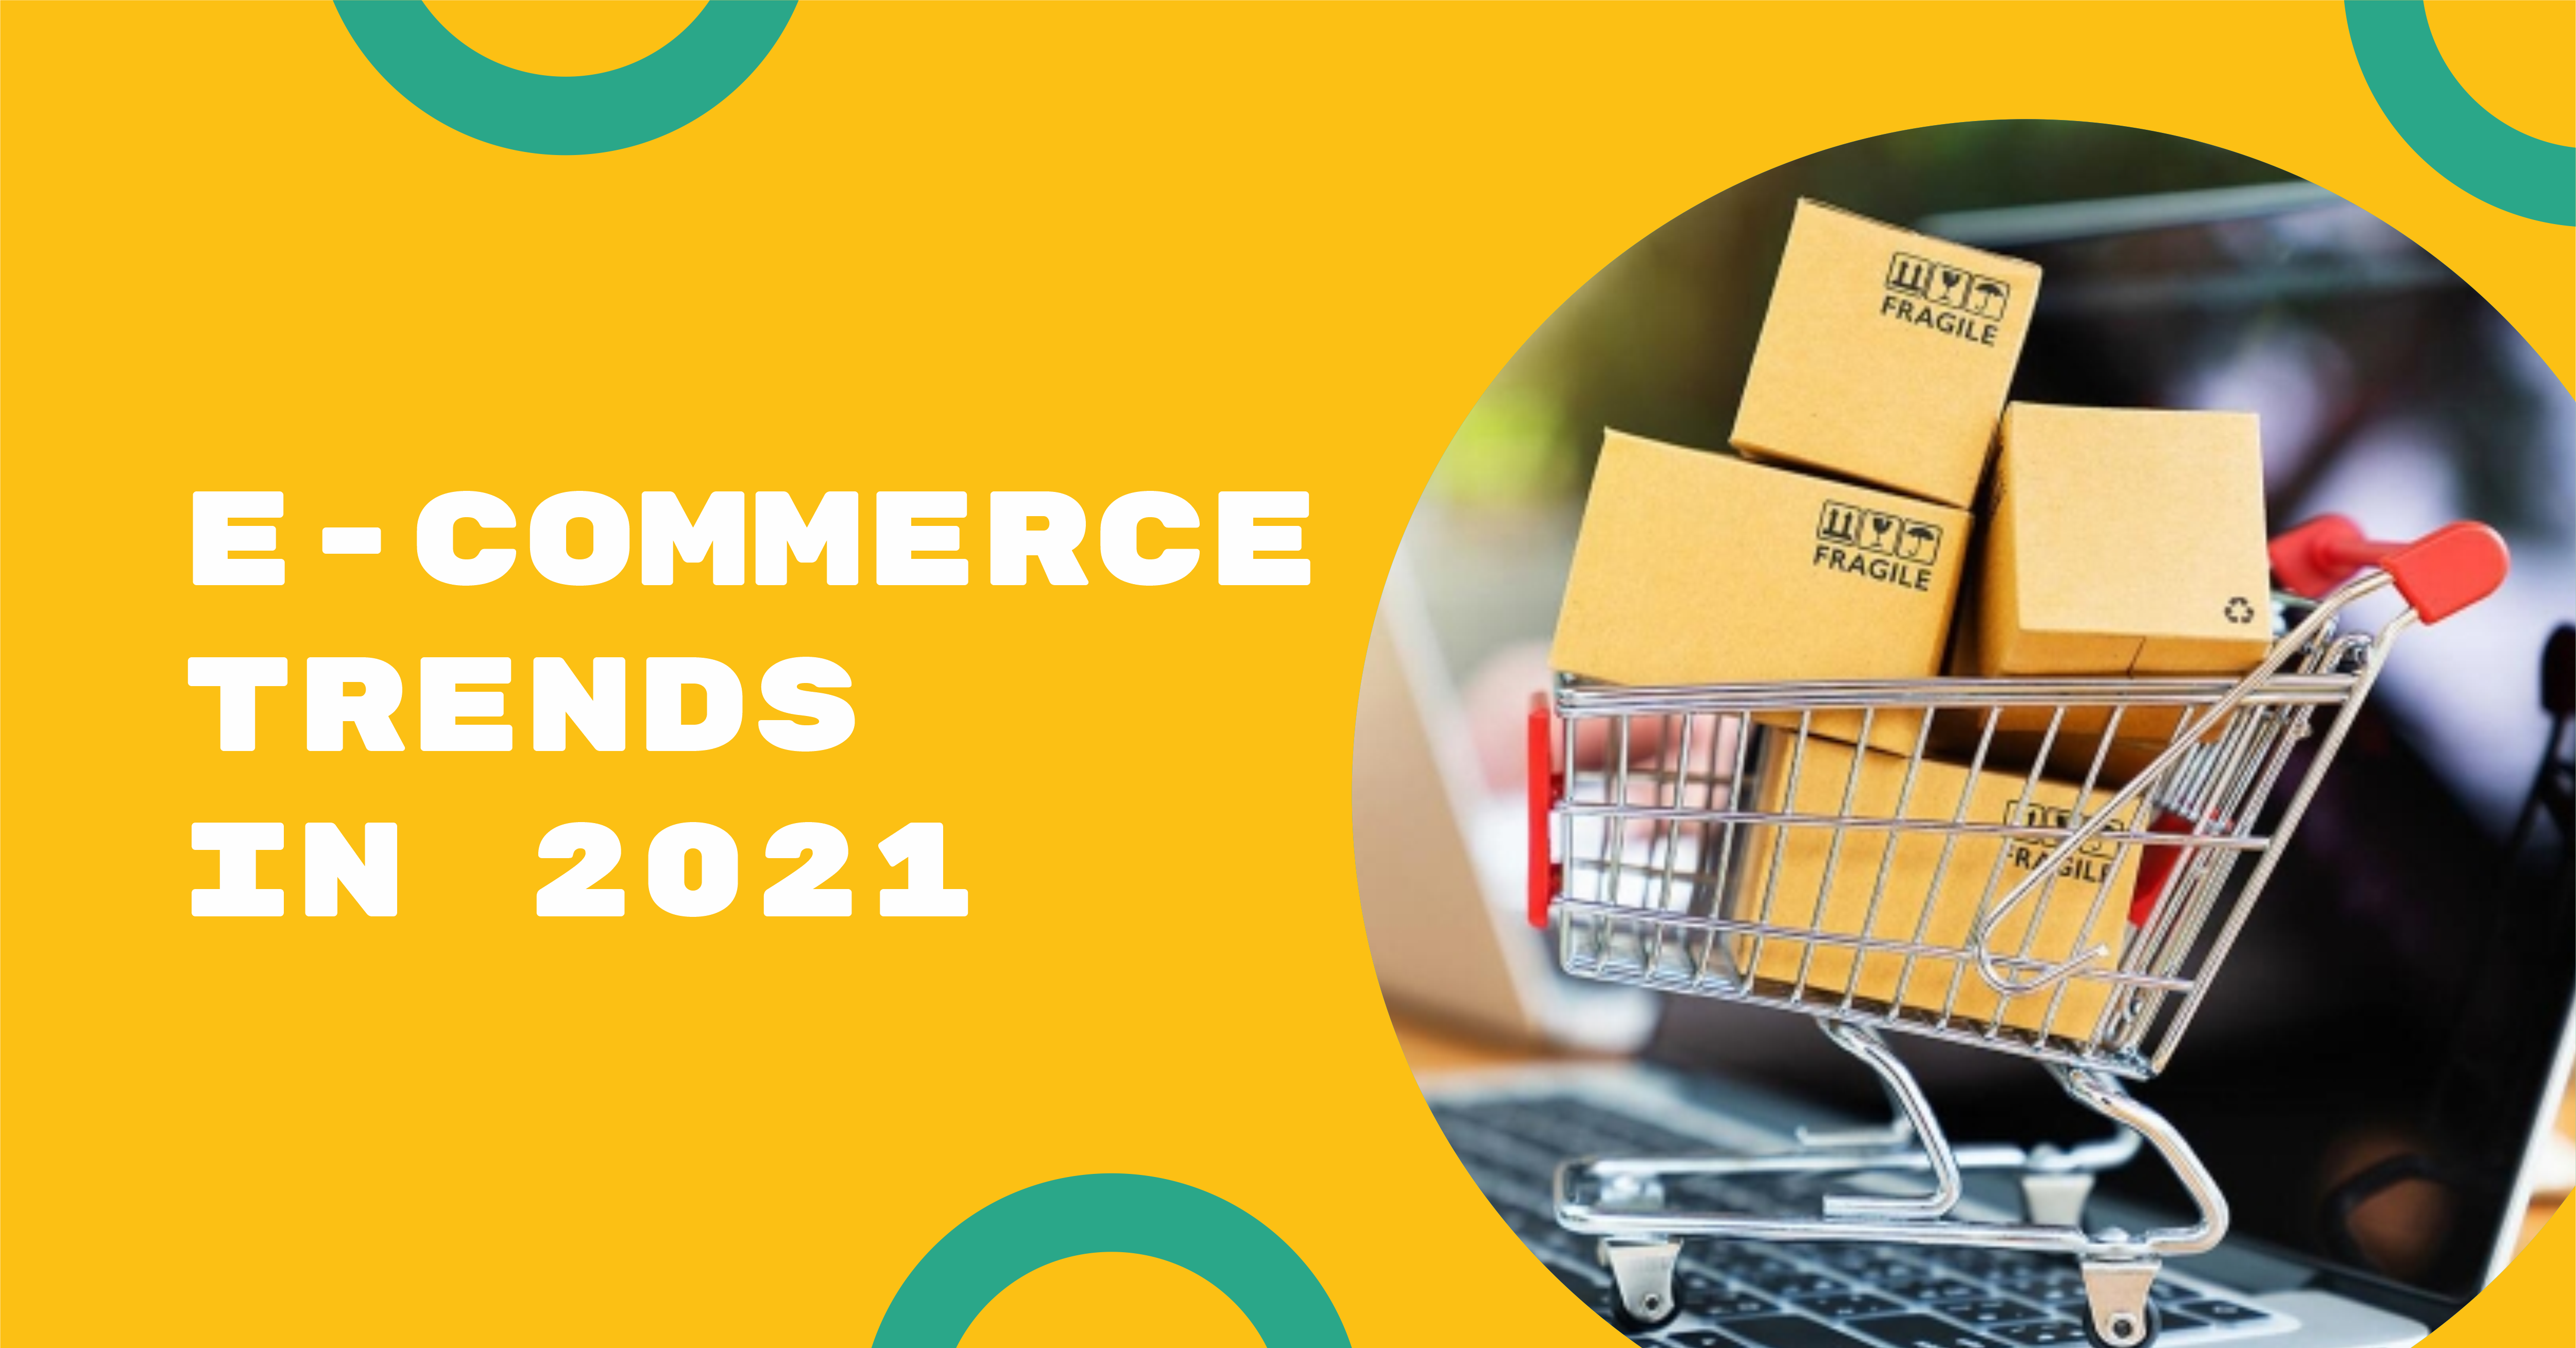 What  are you waiting for?! E-commerce trends in 2021.